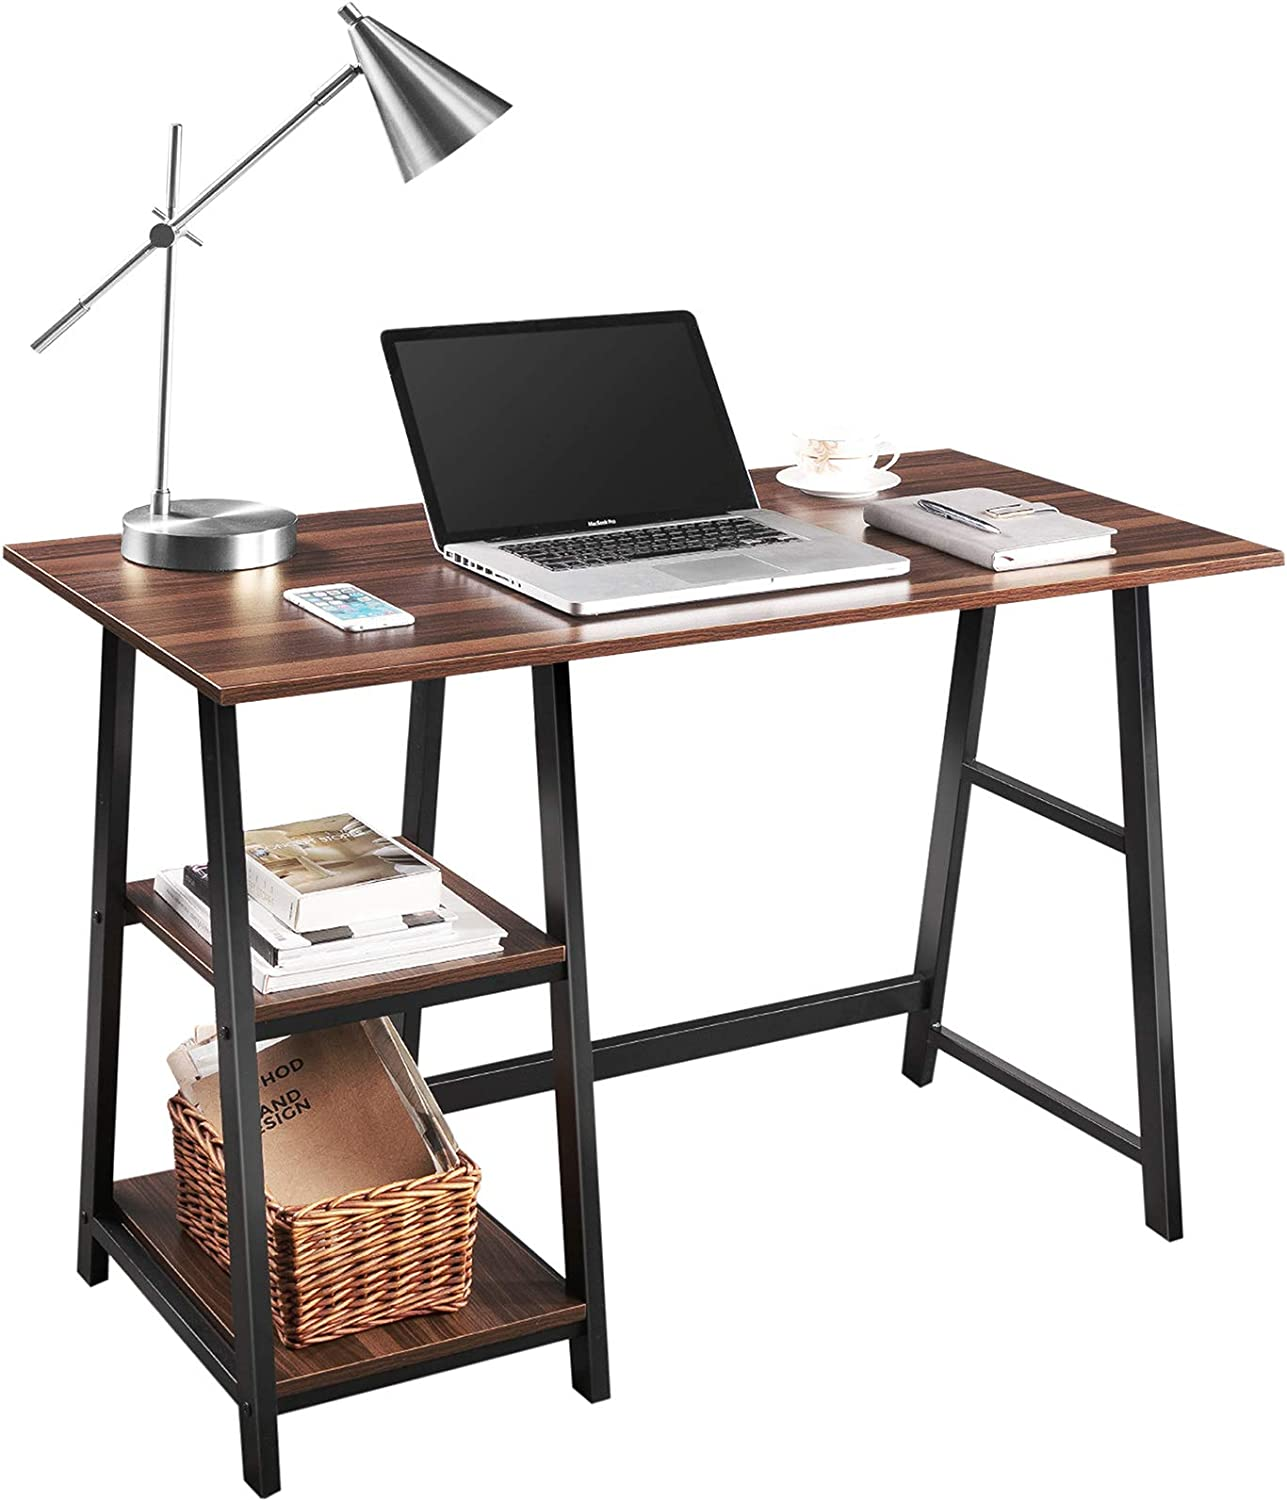 """Computer Desk, QooWare 43"""" Writing Desk with 2 Storage Shelves on Left or Right for Laptops, Modern Simple Study Wooden Desk with Metal Frame for Home Office, Supports Up to 150lbs"""